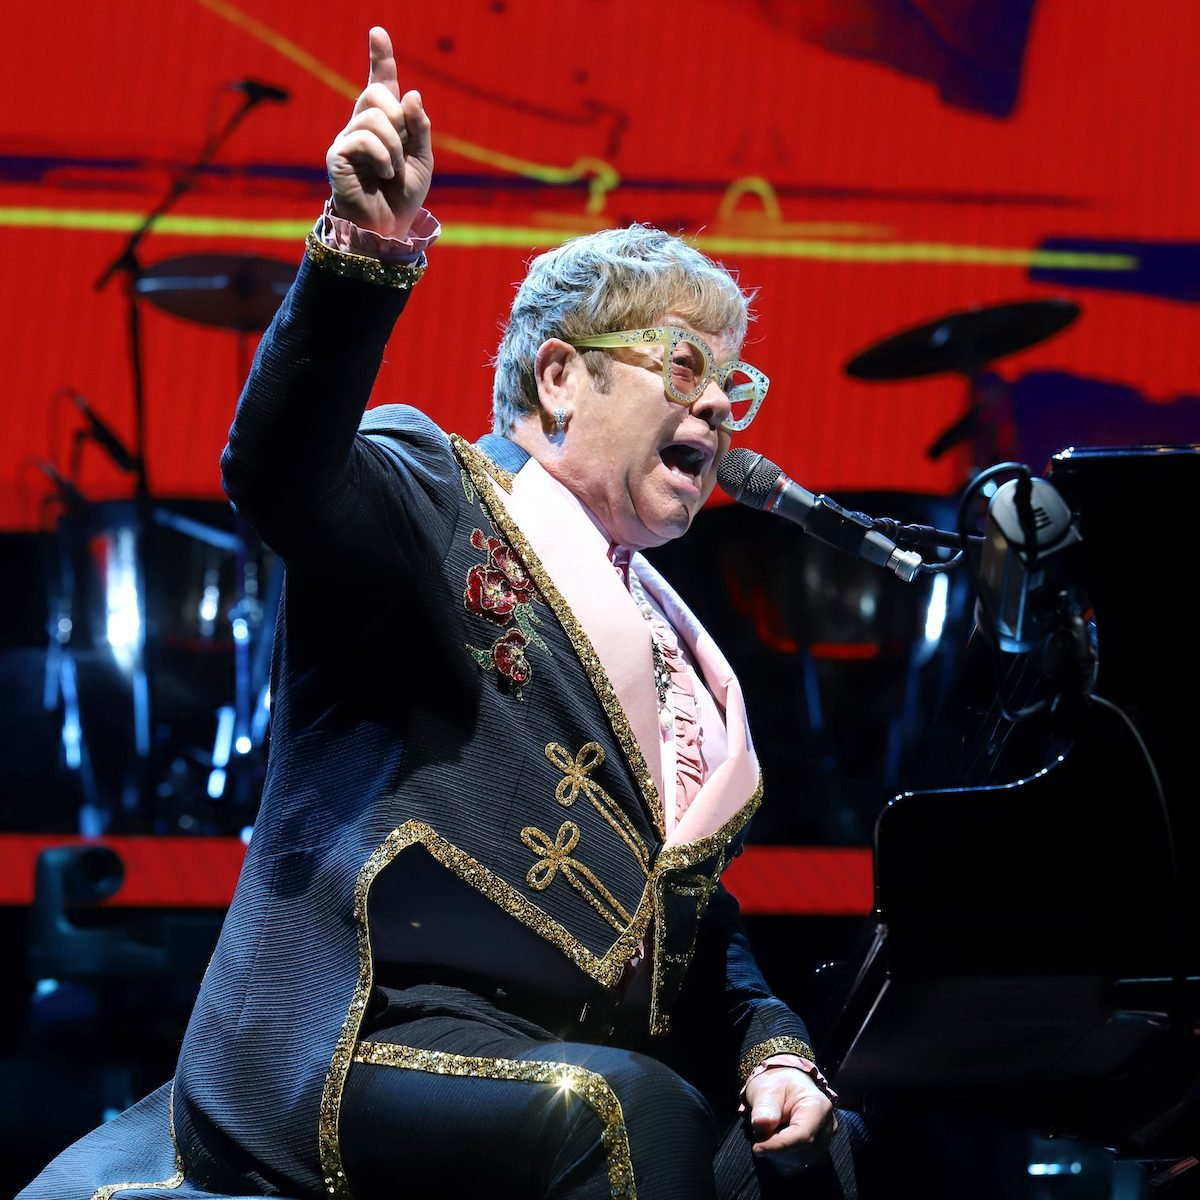 Sir Elton John performs in concert at Madison Square Garden on October 18, 2018 in New York City.